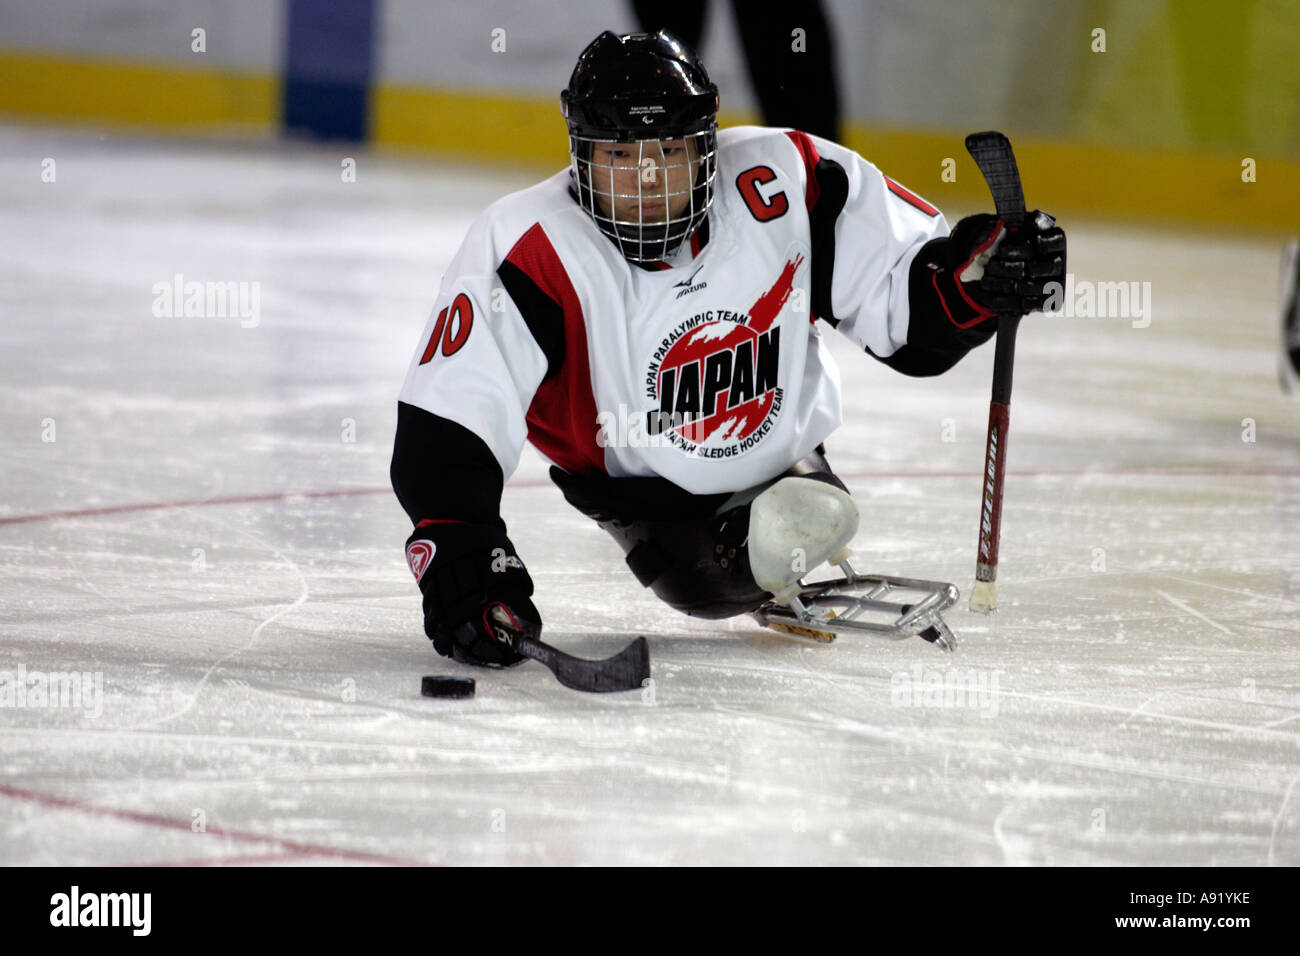 ENDO of Japan in possession of the puck - Stock Image